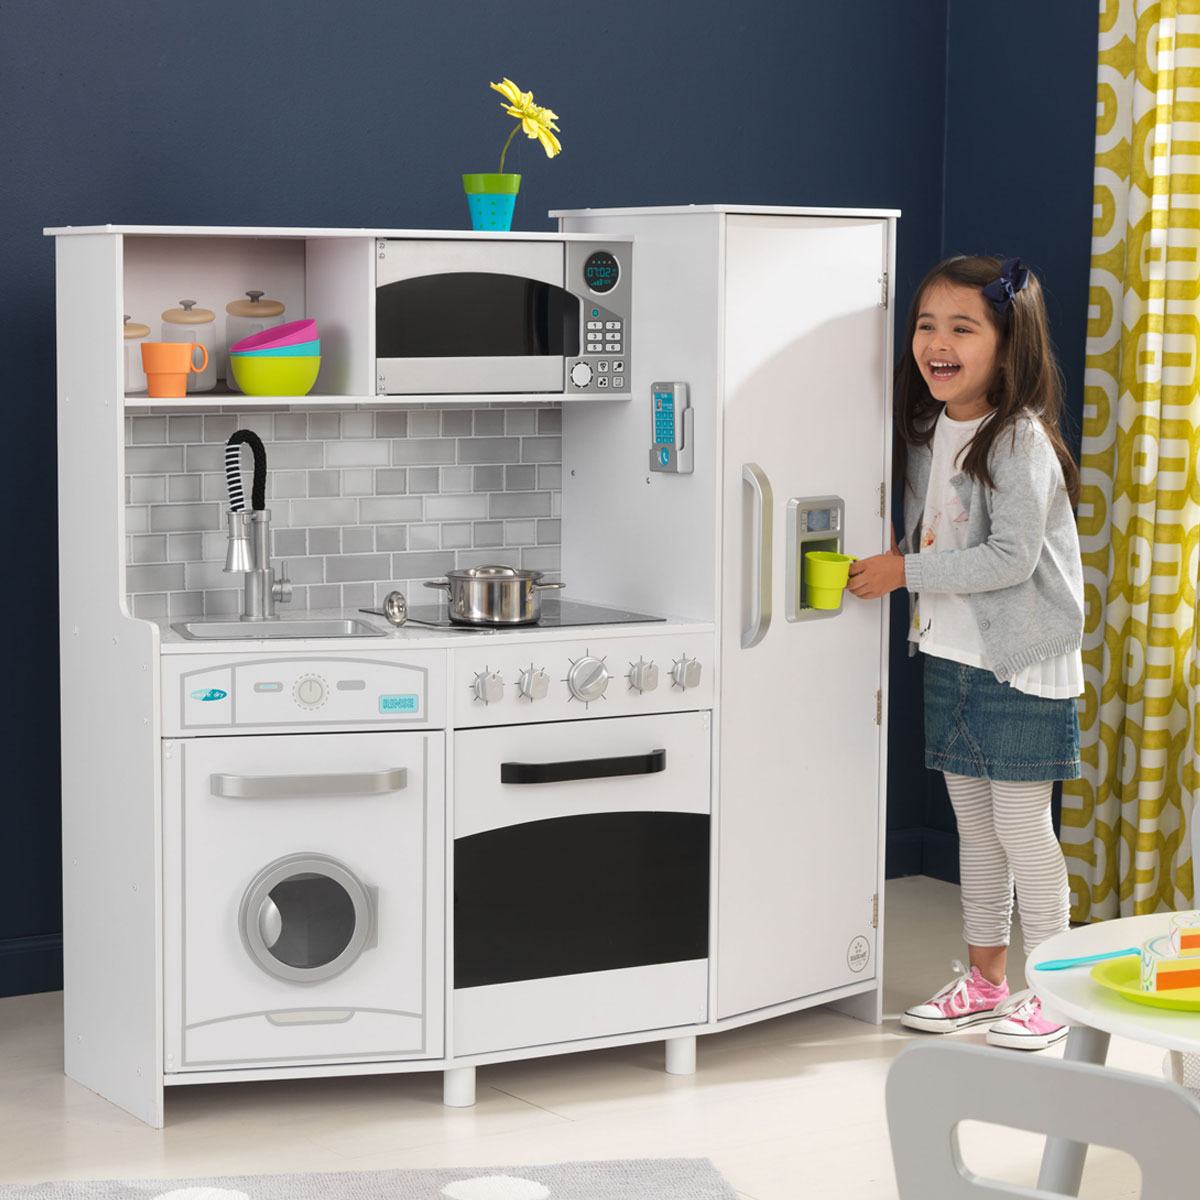 Kitchen Set For Kids Review